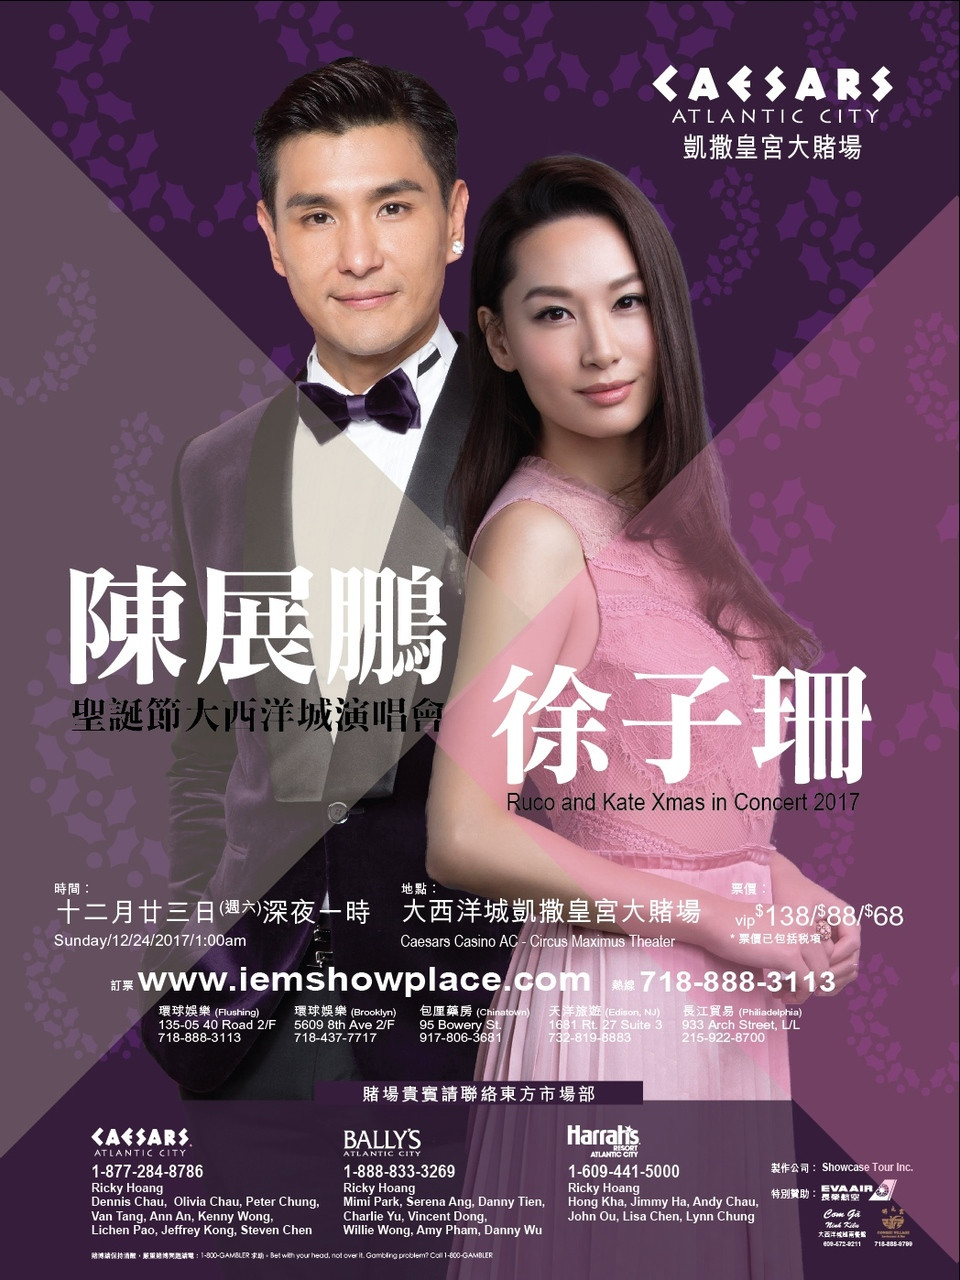 Ruco Chan & Kate Tsui Xmas in Concert 2017